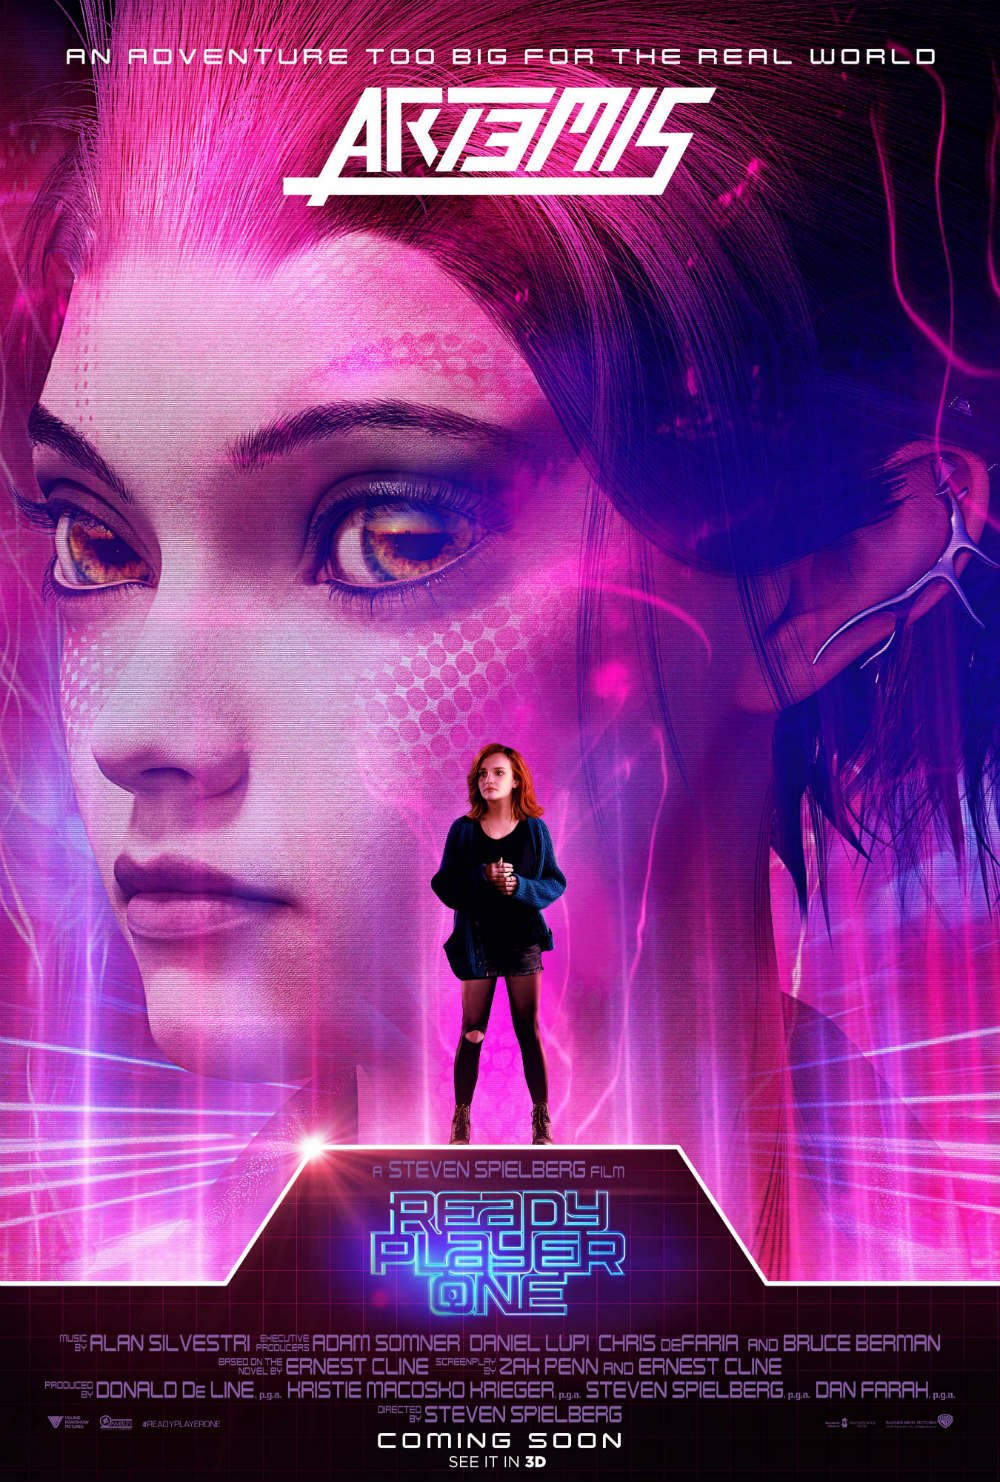 Ready Player One Character Poster Artemis (Olivia Cooke) - OC Movie Reviews - Movie Reviews, Movie News, Documentary Reviews, Short Films, Short Film Reviews, Trailers, Movie Trailers, Interviews, film reviews, film news, hollywood, indie films, documentaries